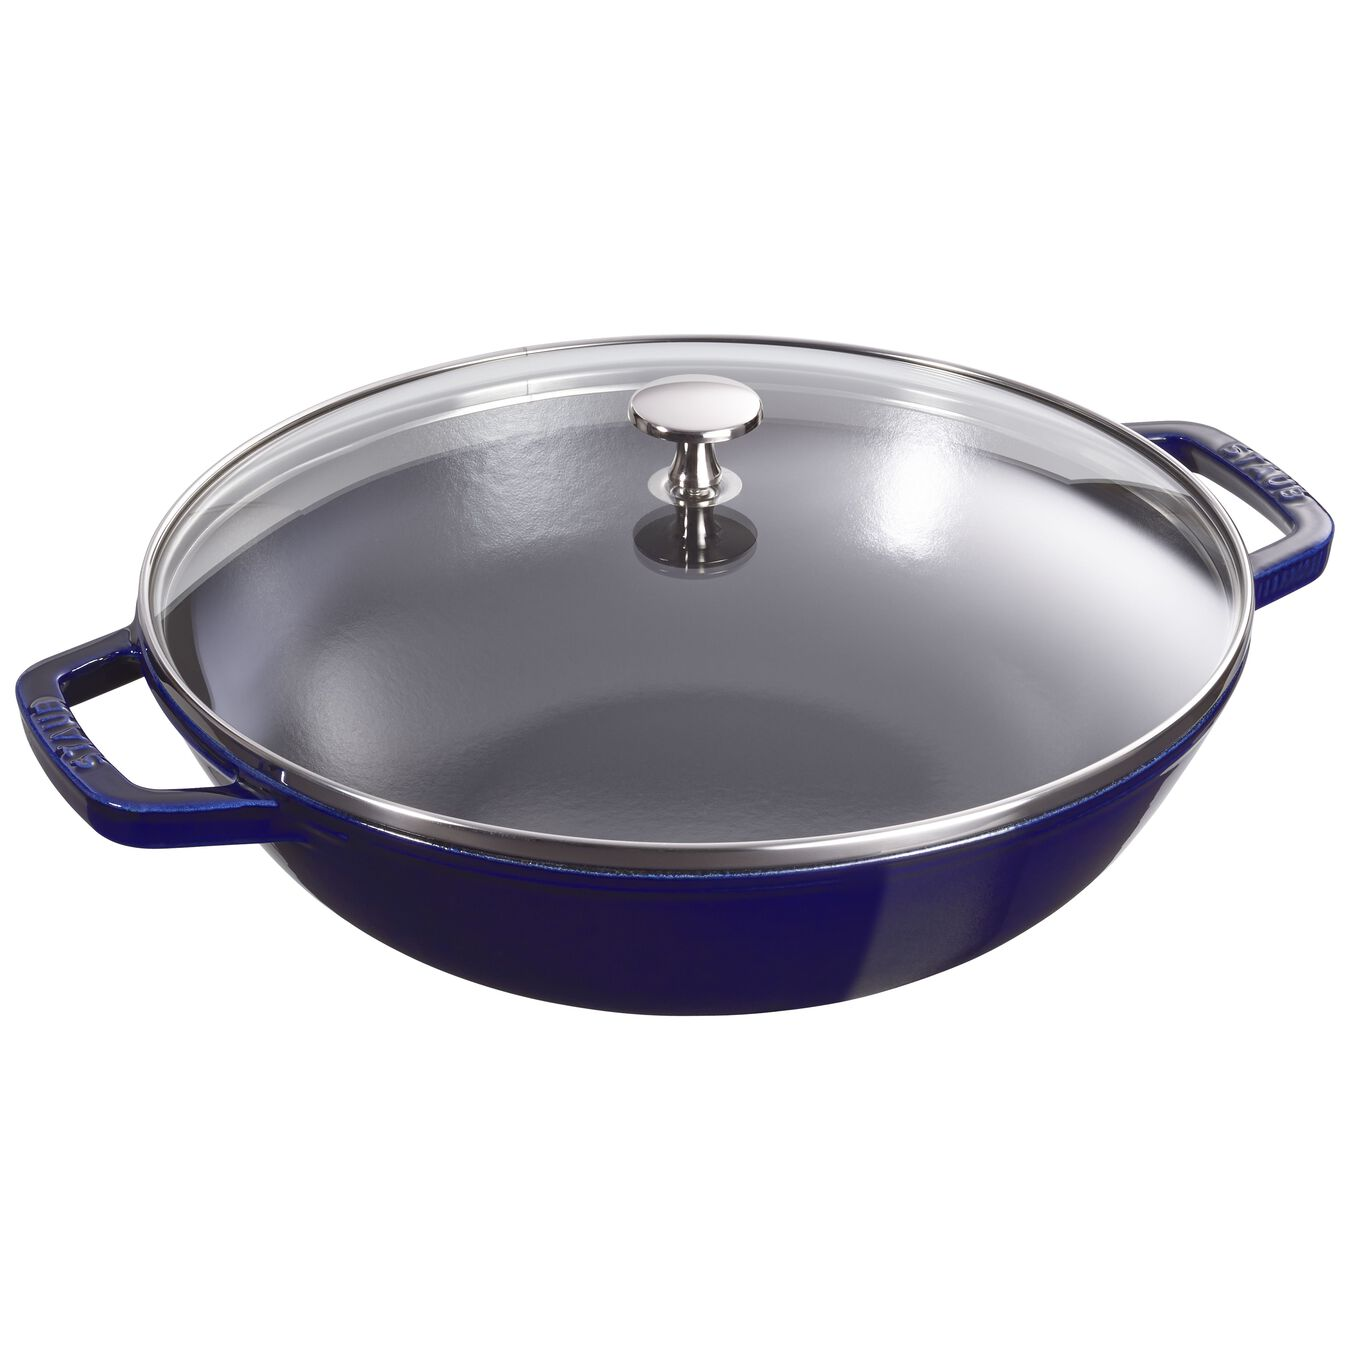 30 cm / 12 inch Cast iron Wok with glass lid, dark-blue,,large 1